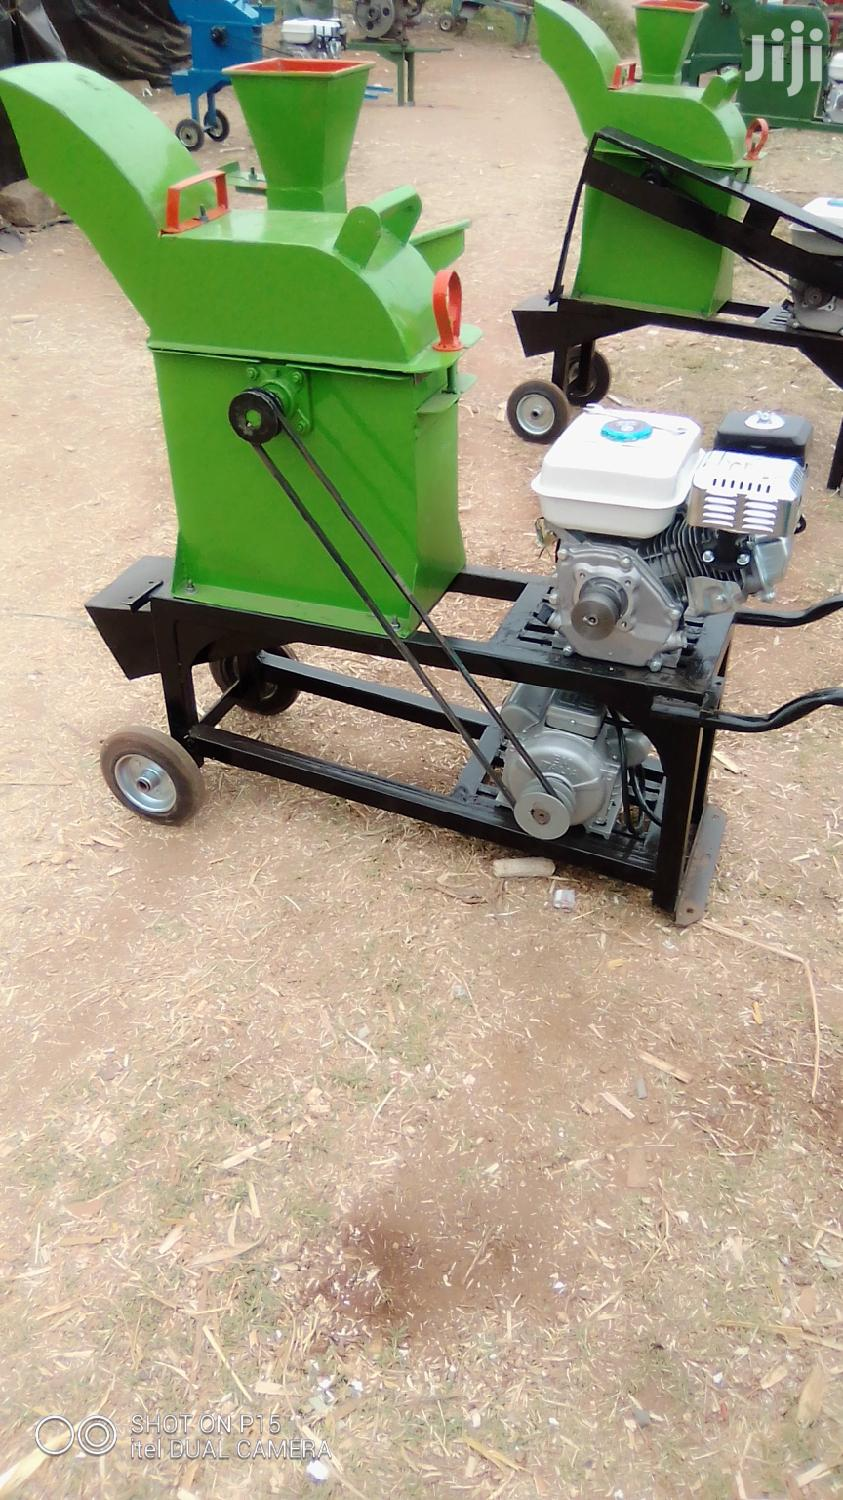 Archive: Combined Petrol Engine And Electric Motor Chopping Machine